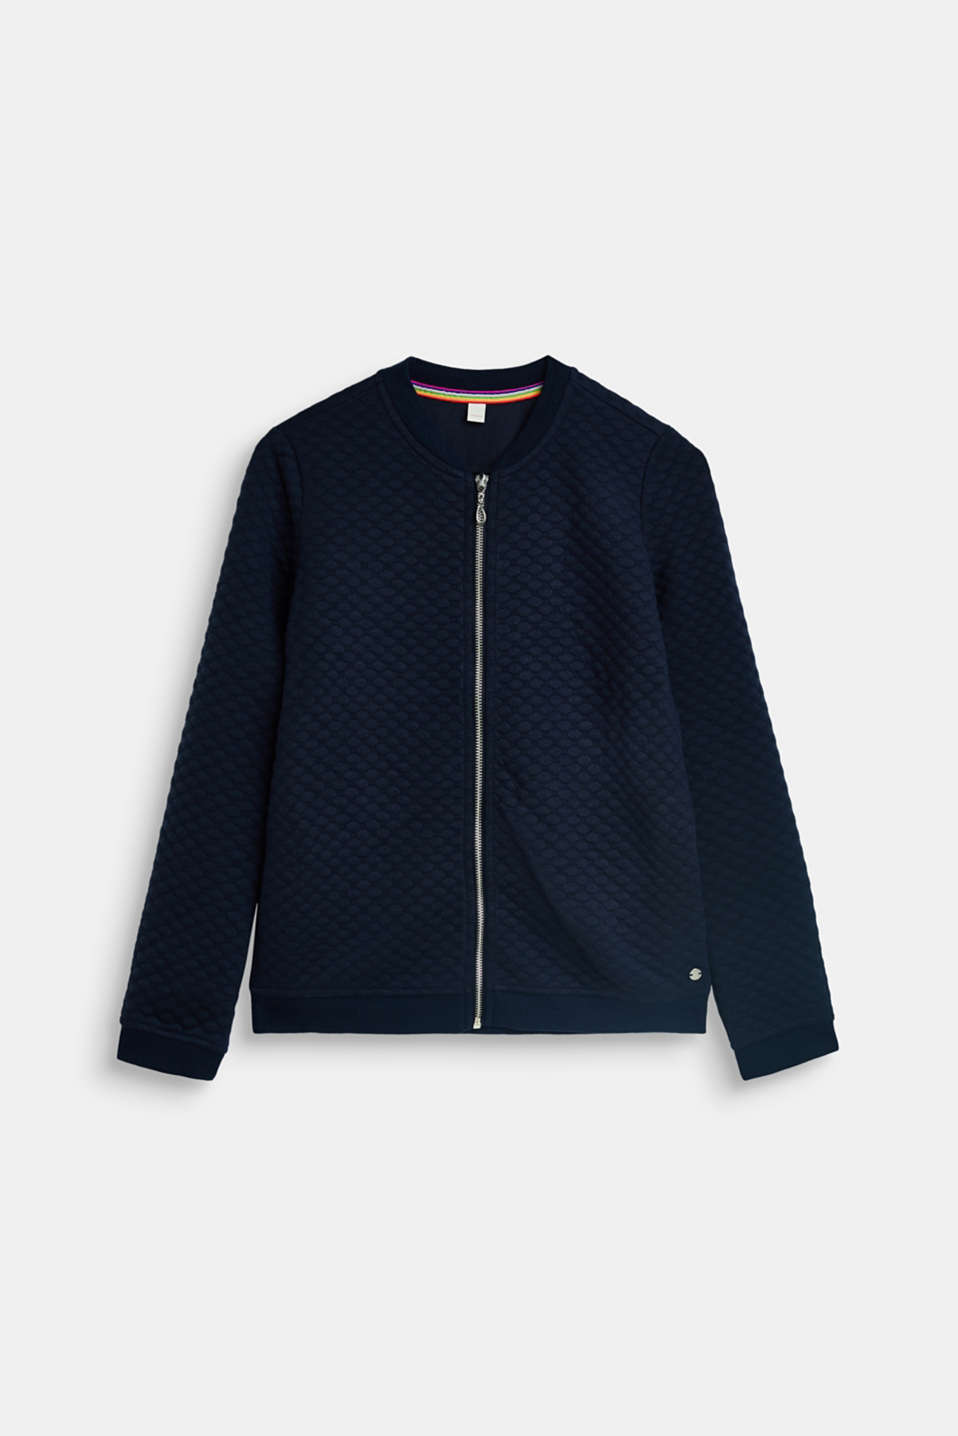 Esprit Textured bomber jacket in stretch jersey at our